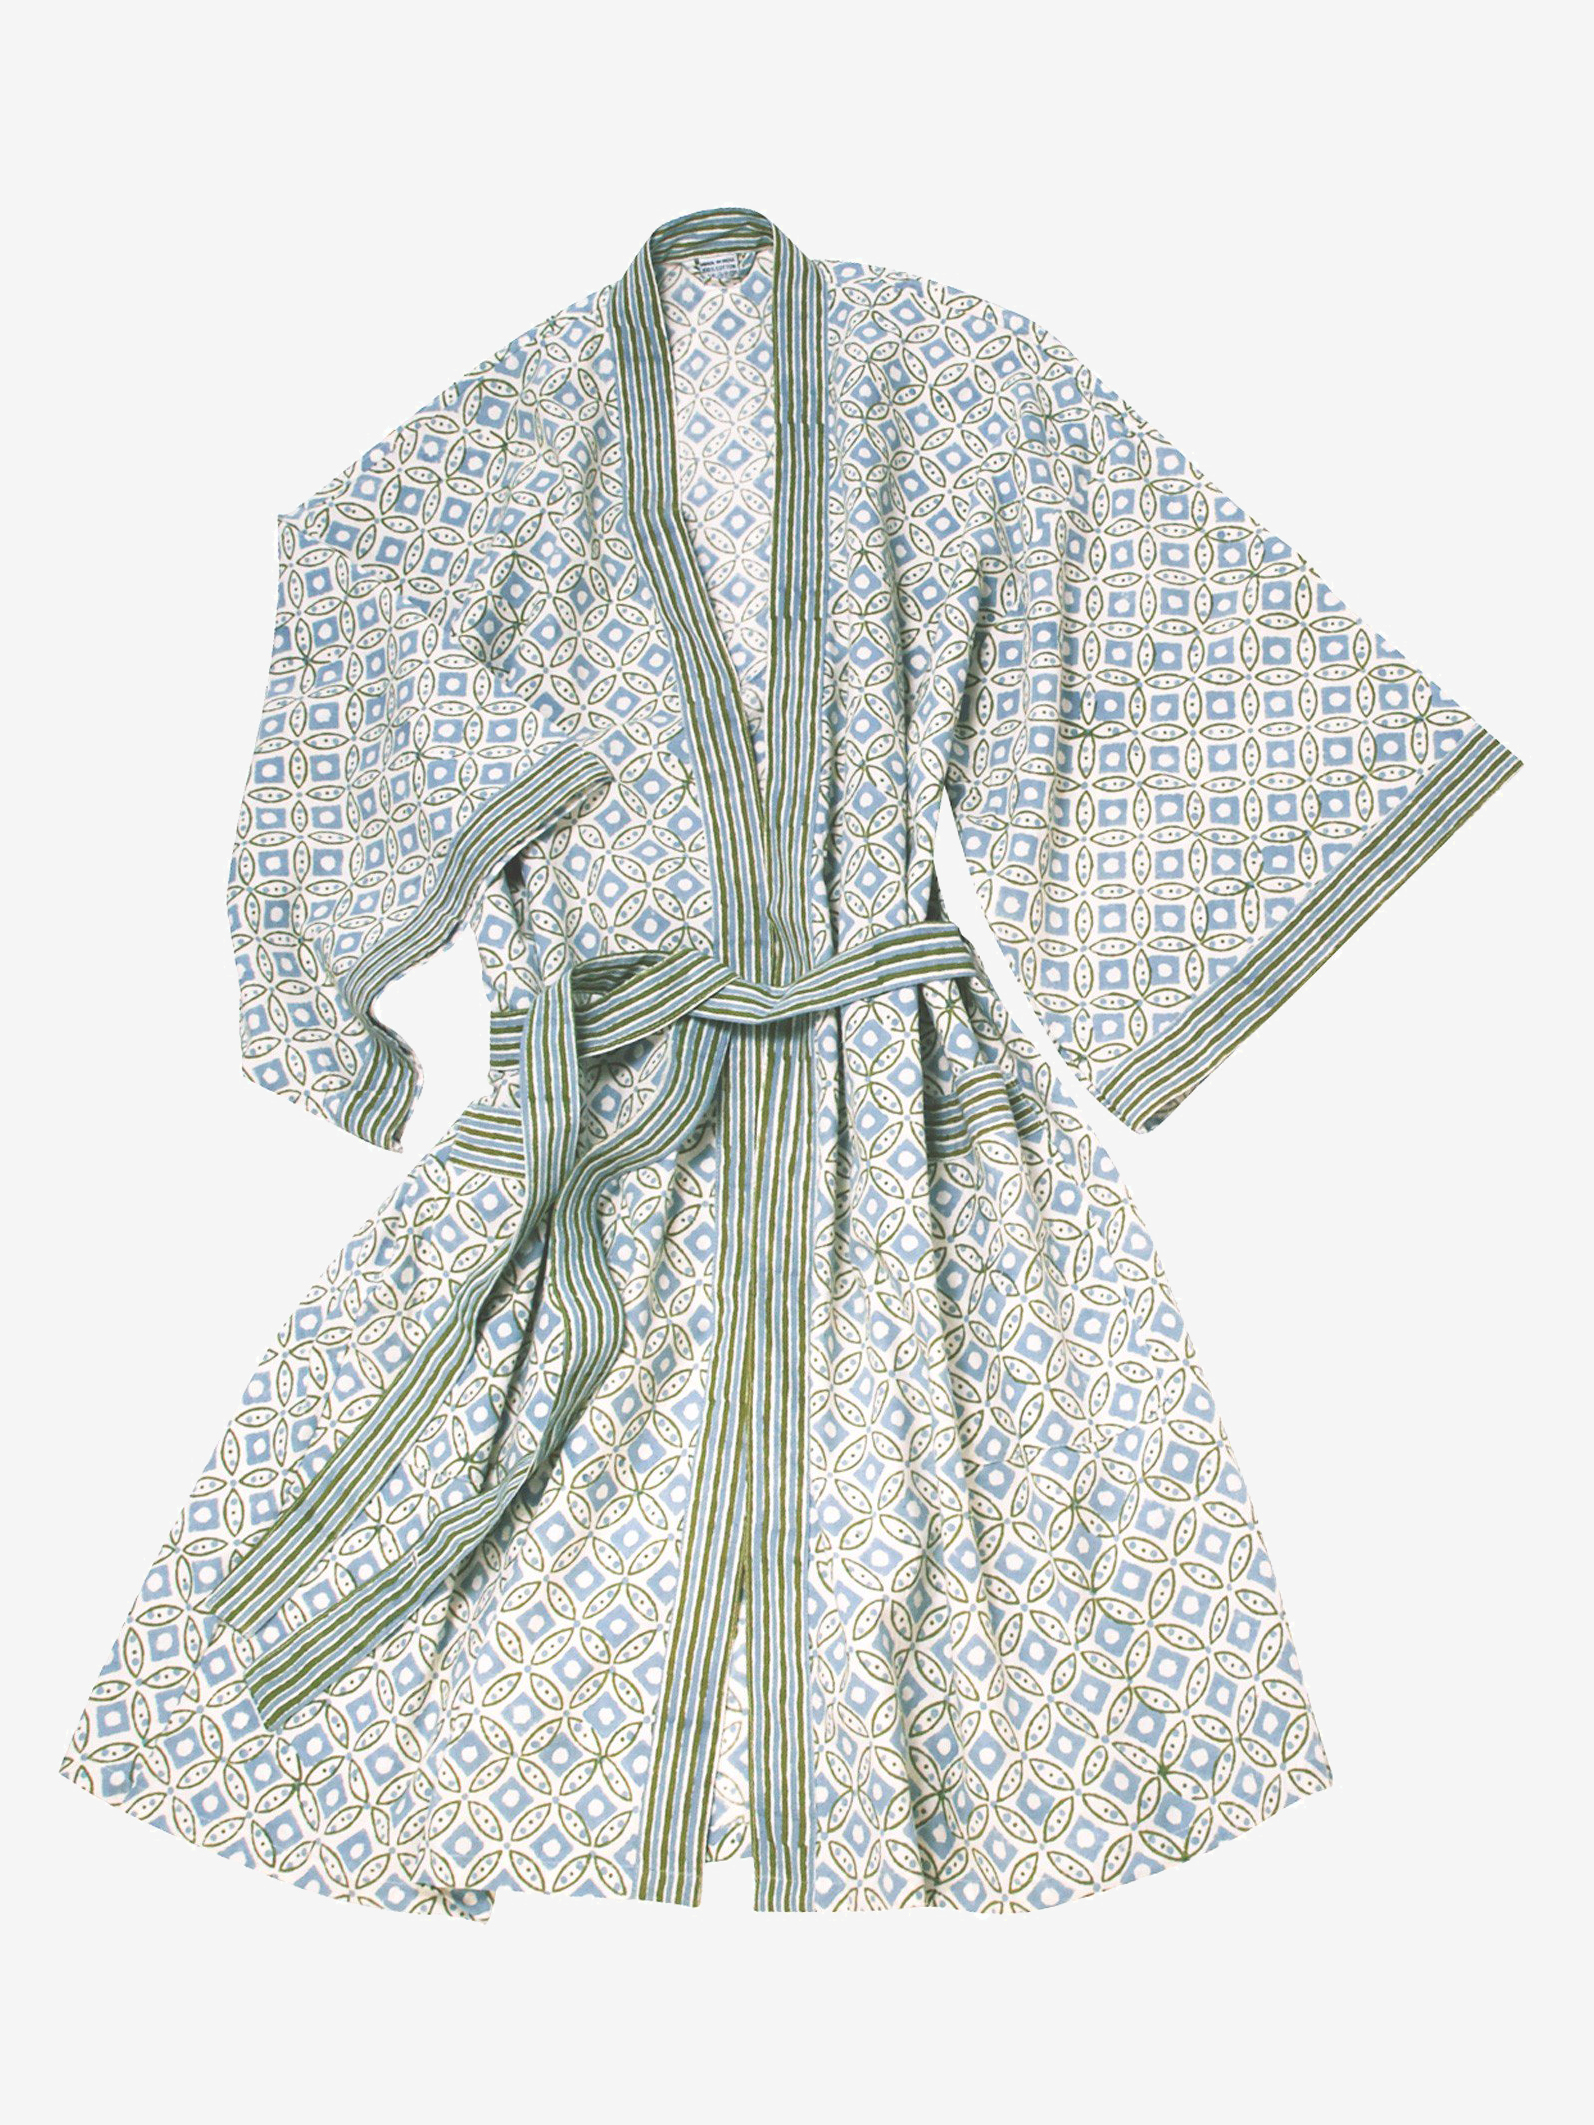 Rajasthan Blockprint Robe | Ten Thousand Villages - Eco-Friendly & Fair Trade Bridesmaids Gifts